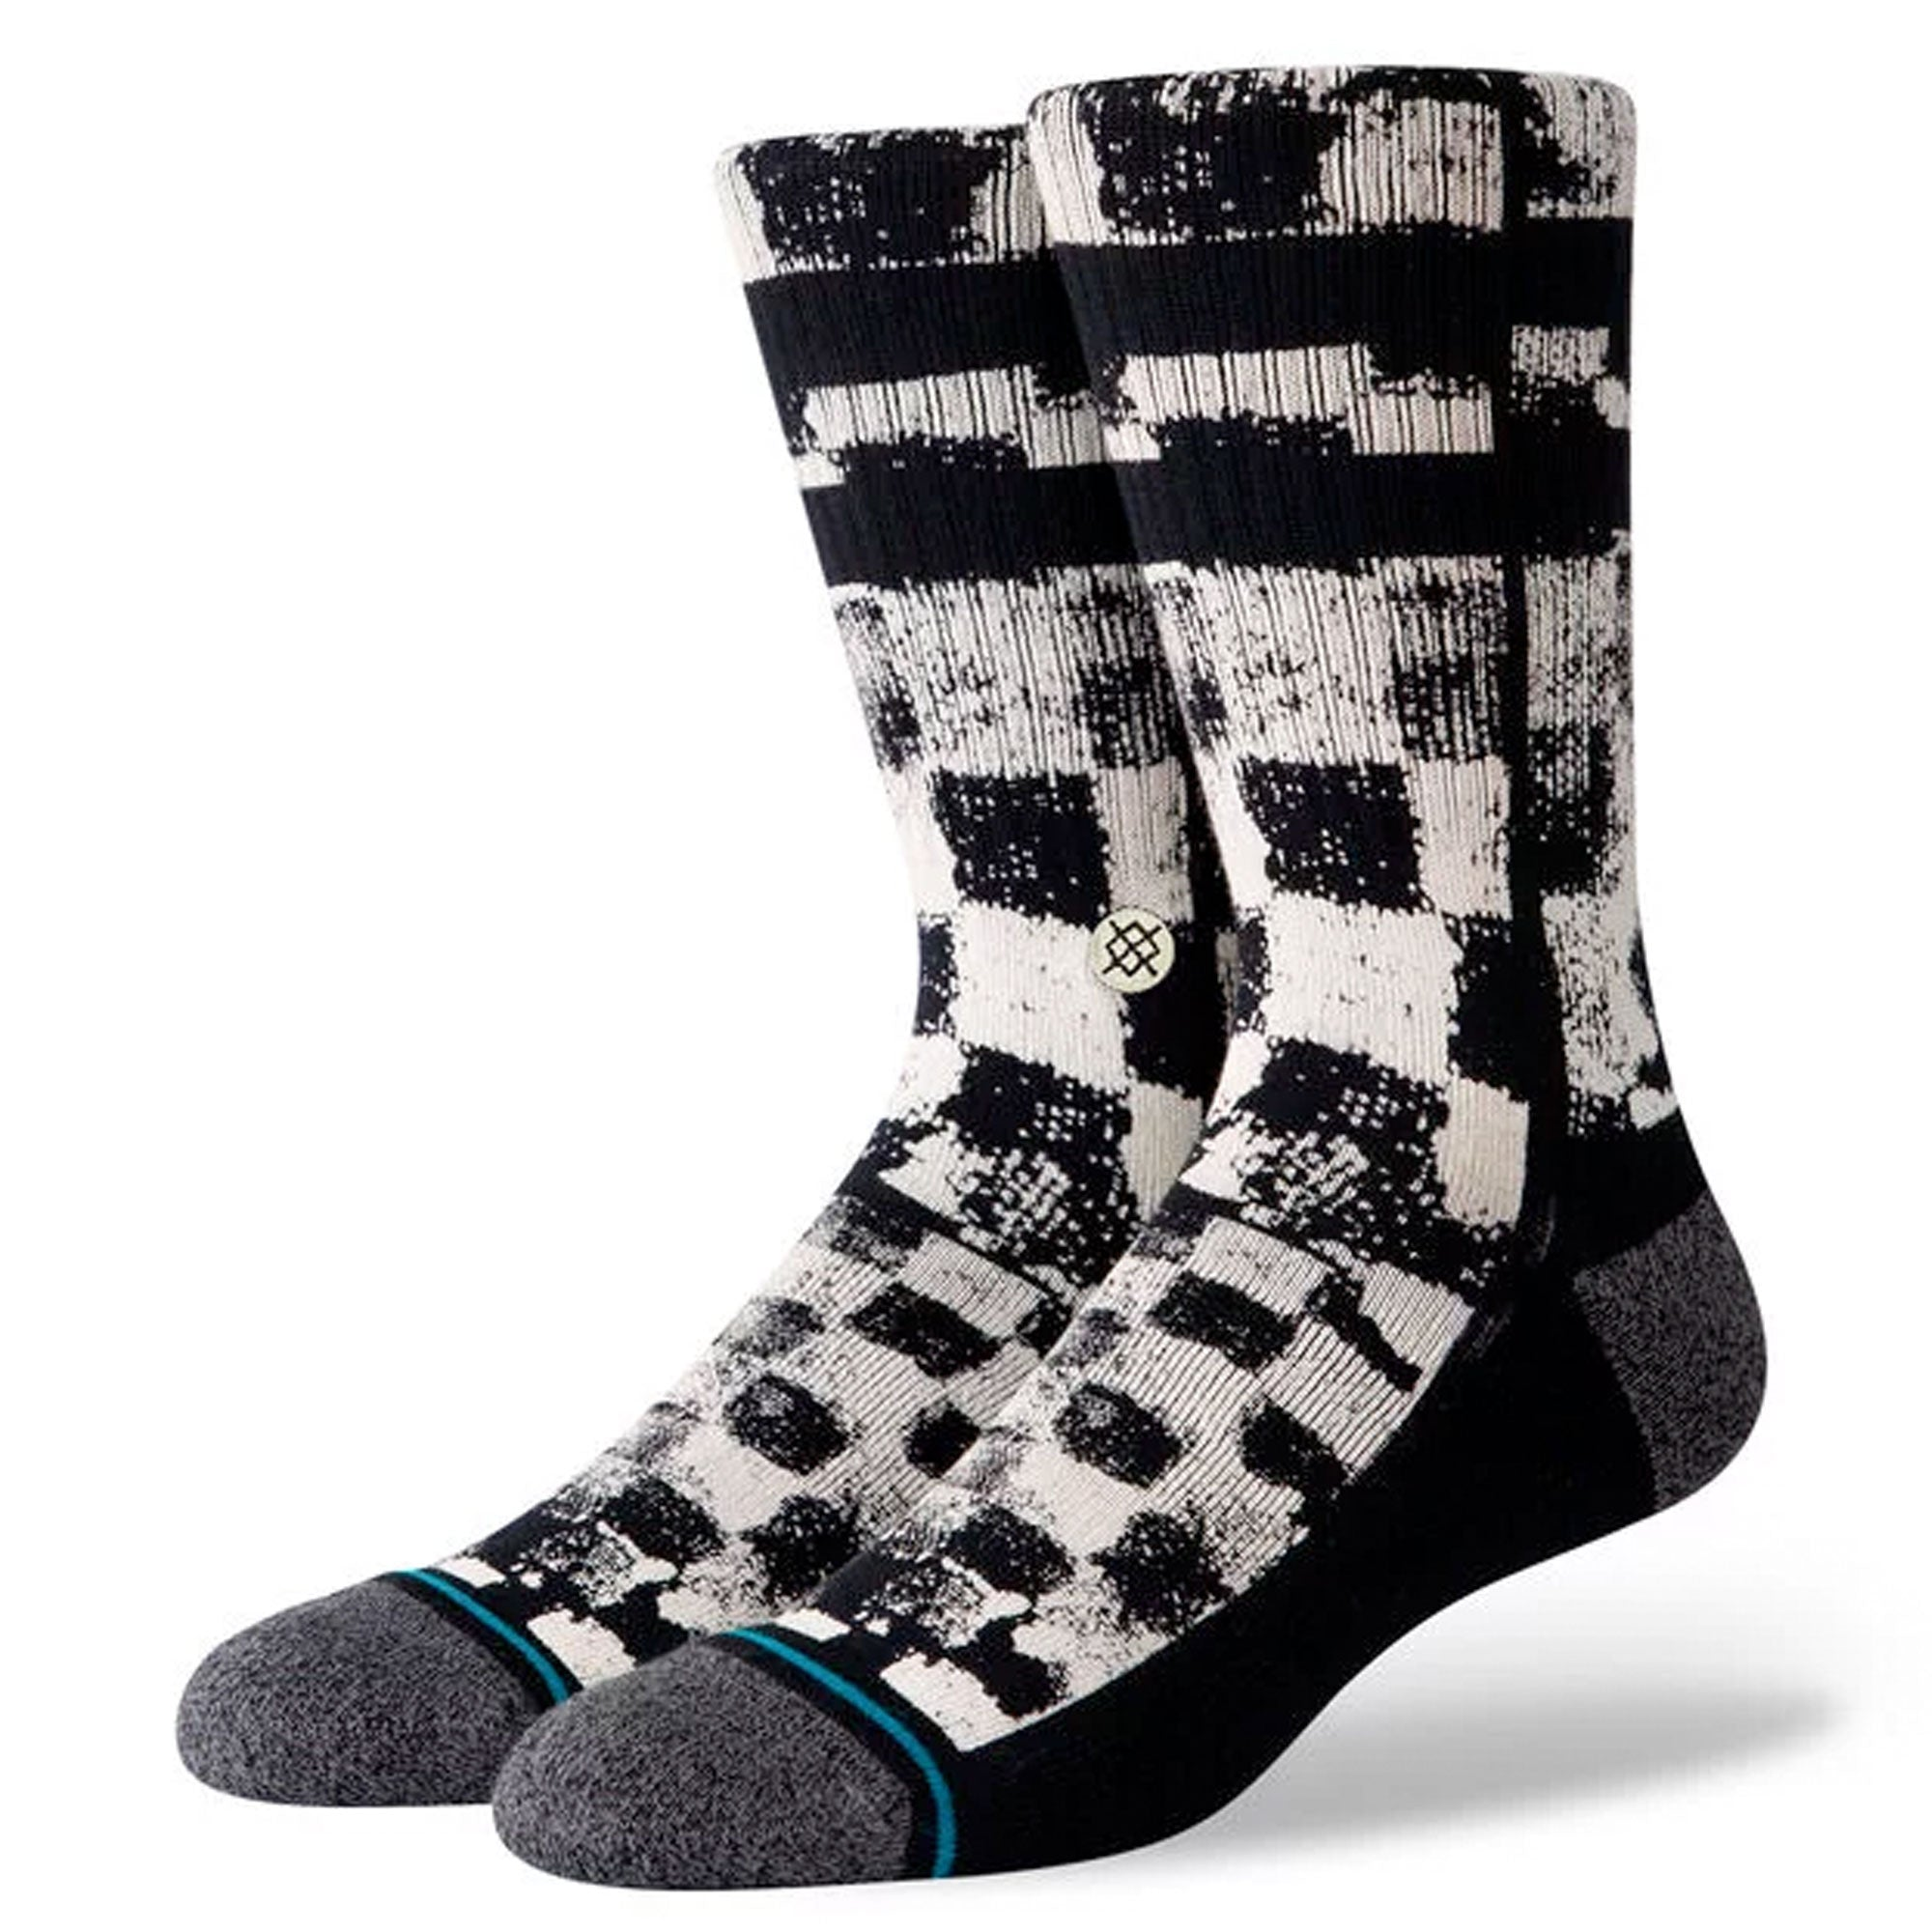 Stance Hasting Men's Socks